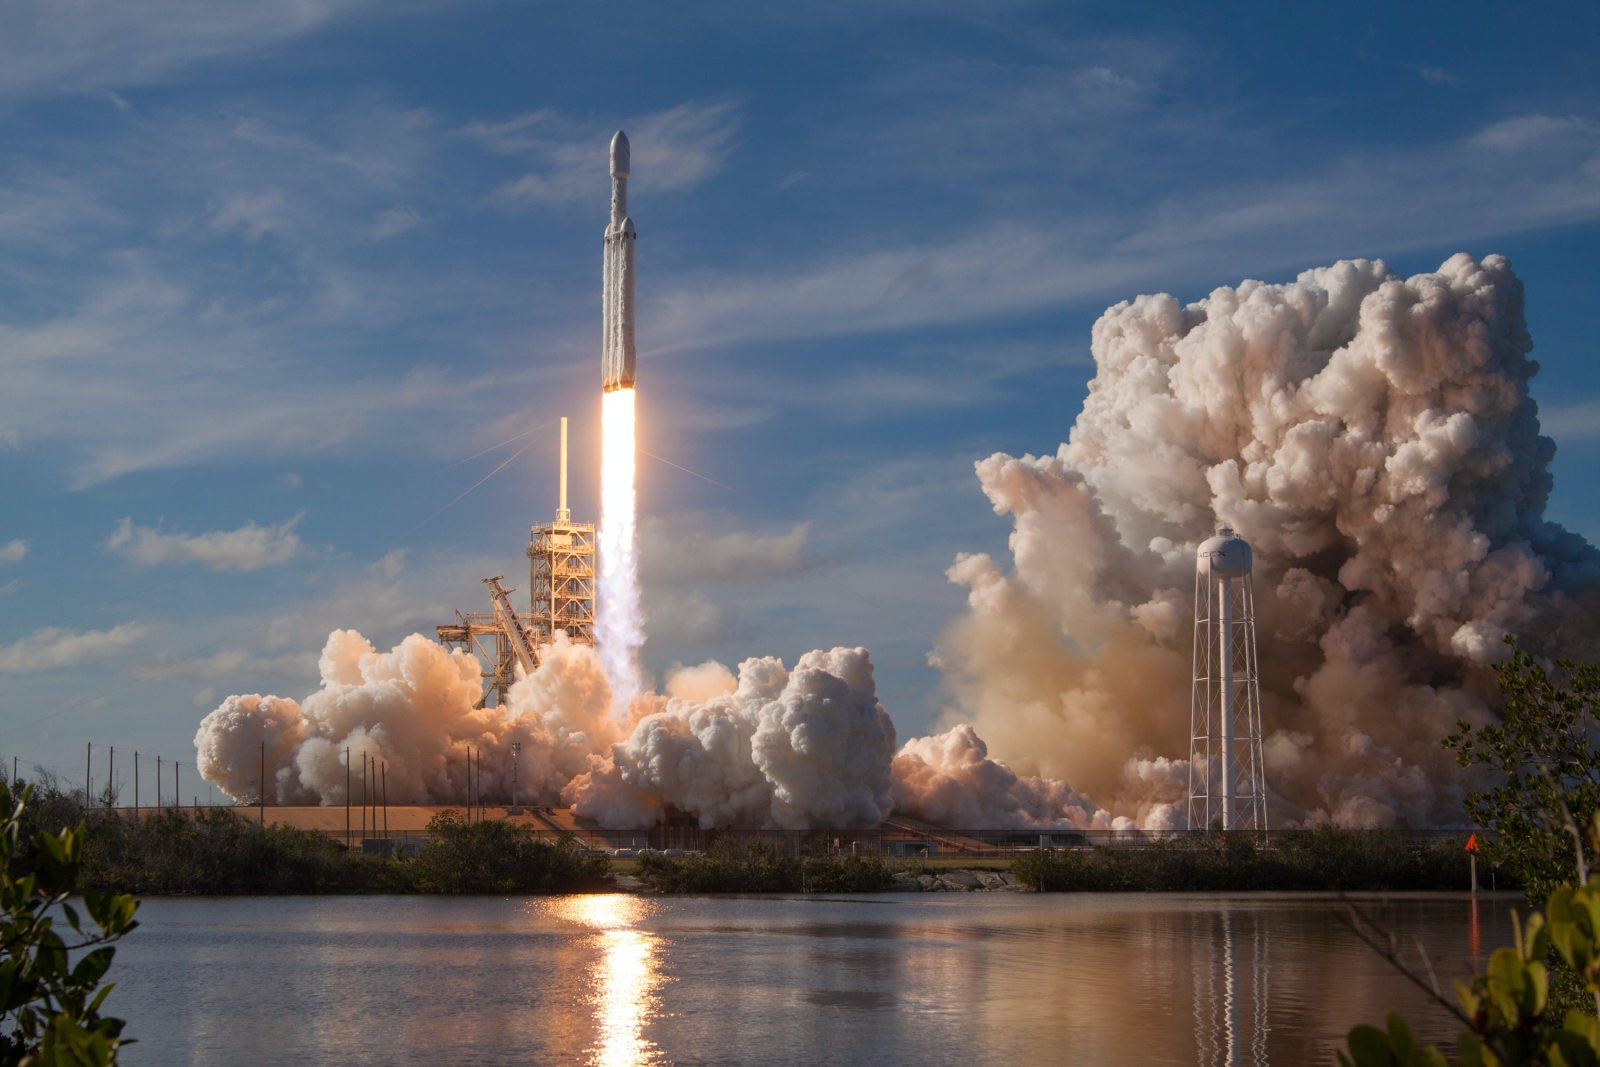 Get into Space with Power Automate and the EONET by NASA connector Microsoft Office 365 spacex OHOU 5UVIYQ unsplash